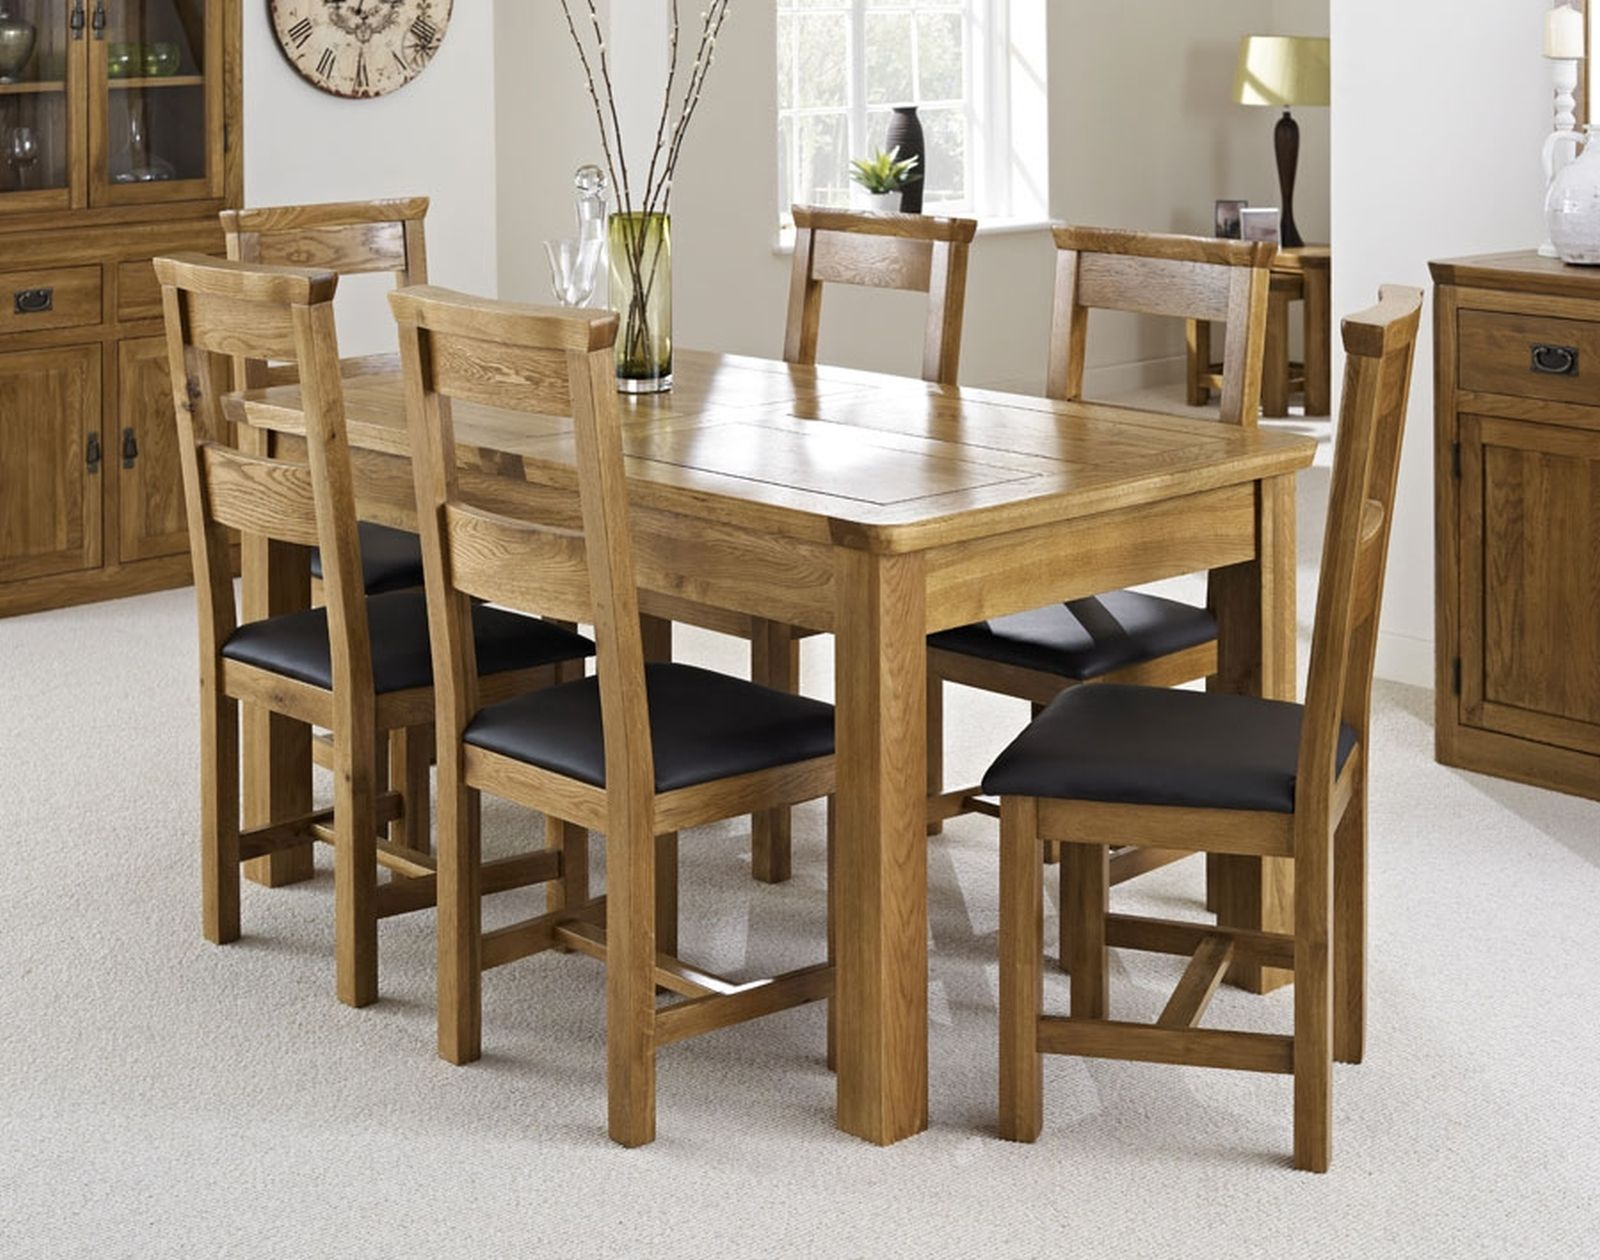 furniture chairs see more dover solid oak bedroom furniture set of